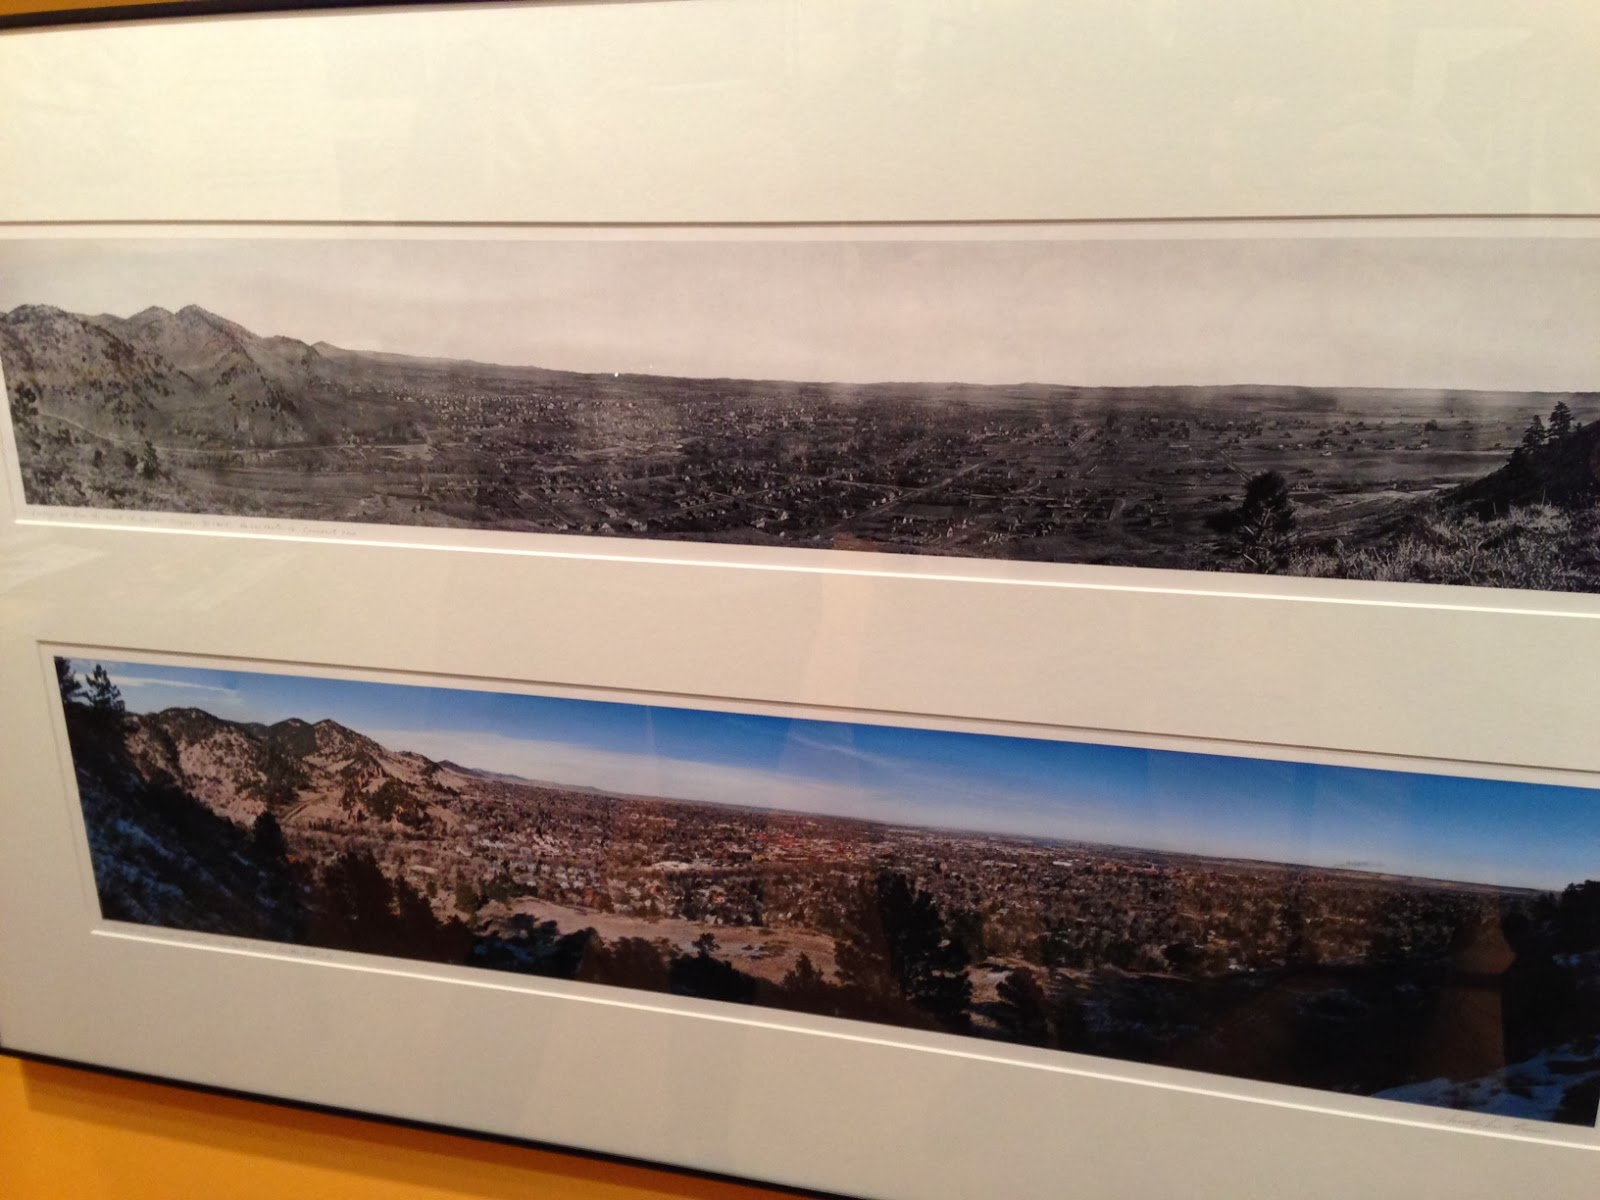 A panoramic photo showing the changes in the city of Boulder over the course of the past 100 years